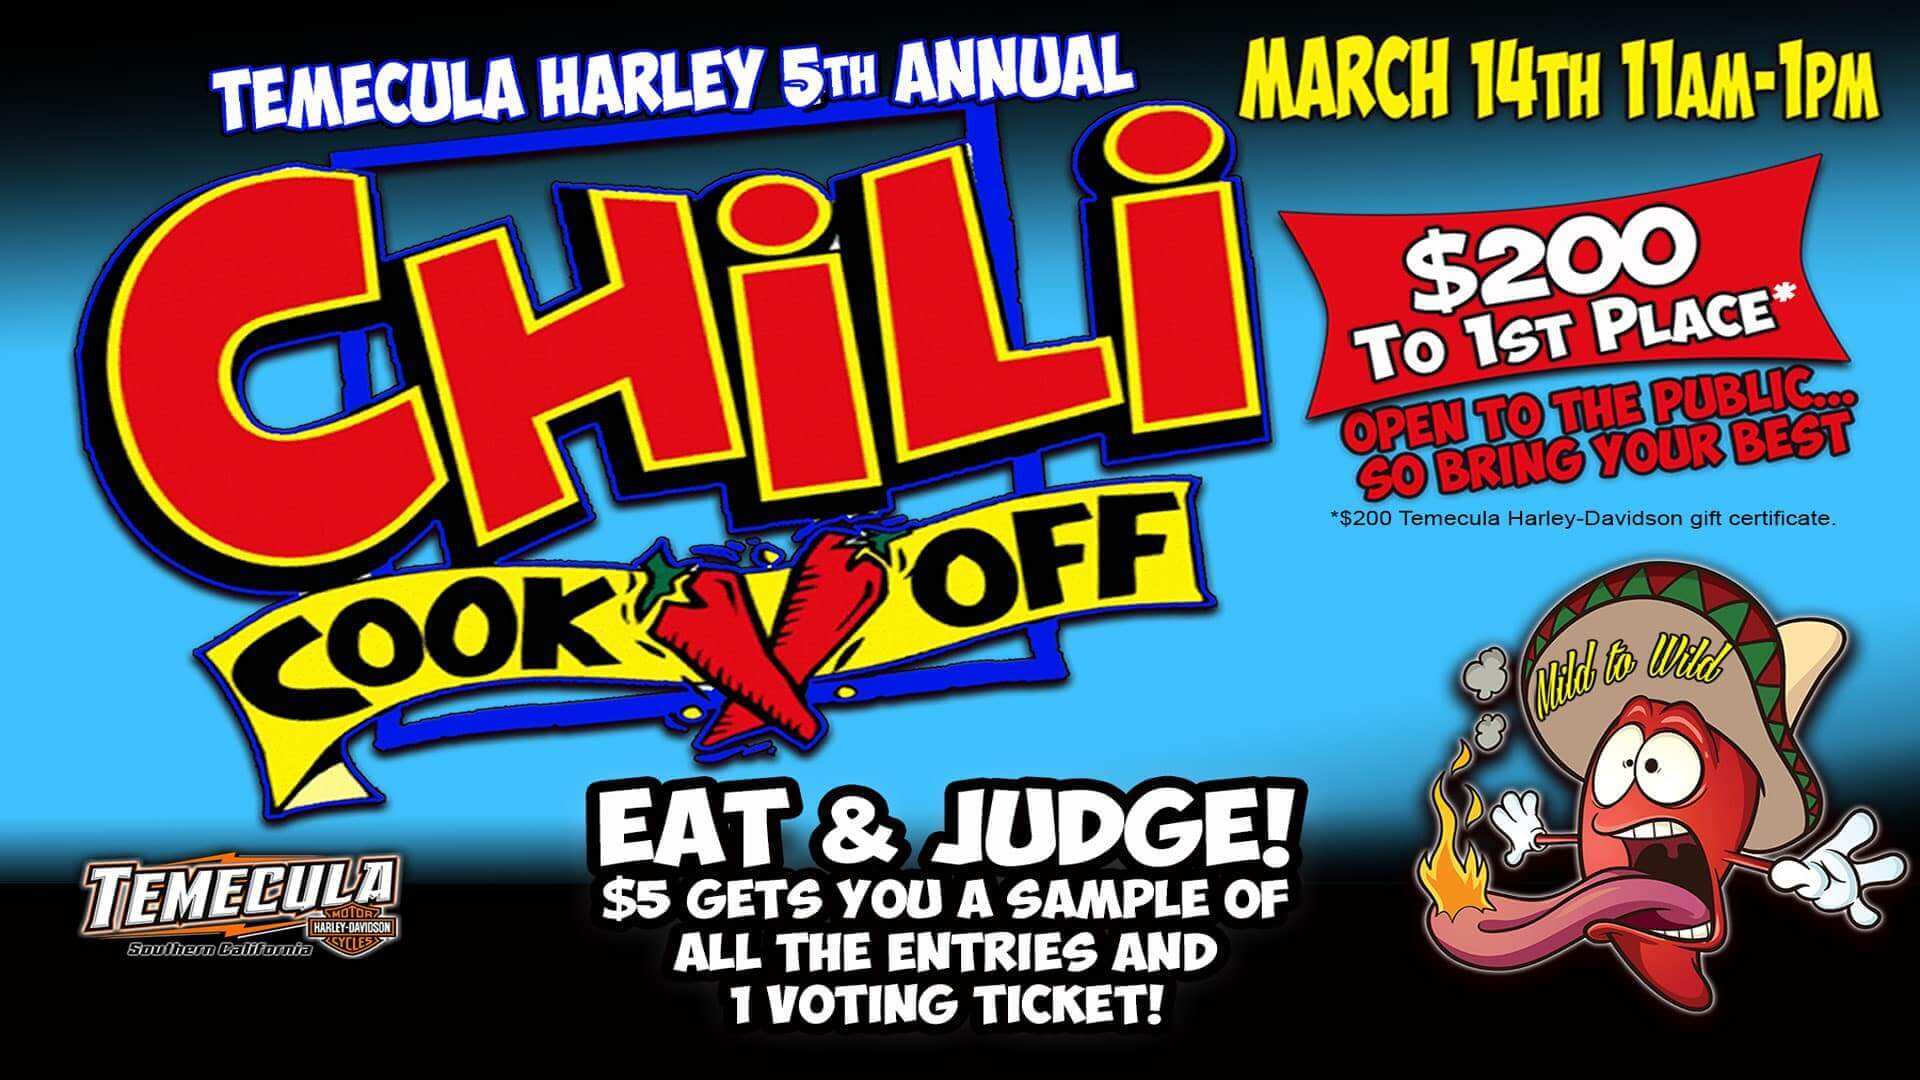 Temecula Harley 5th Annual Chili Cook-Off